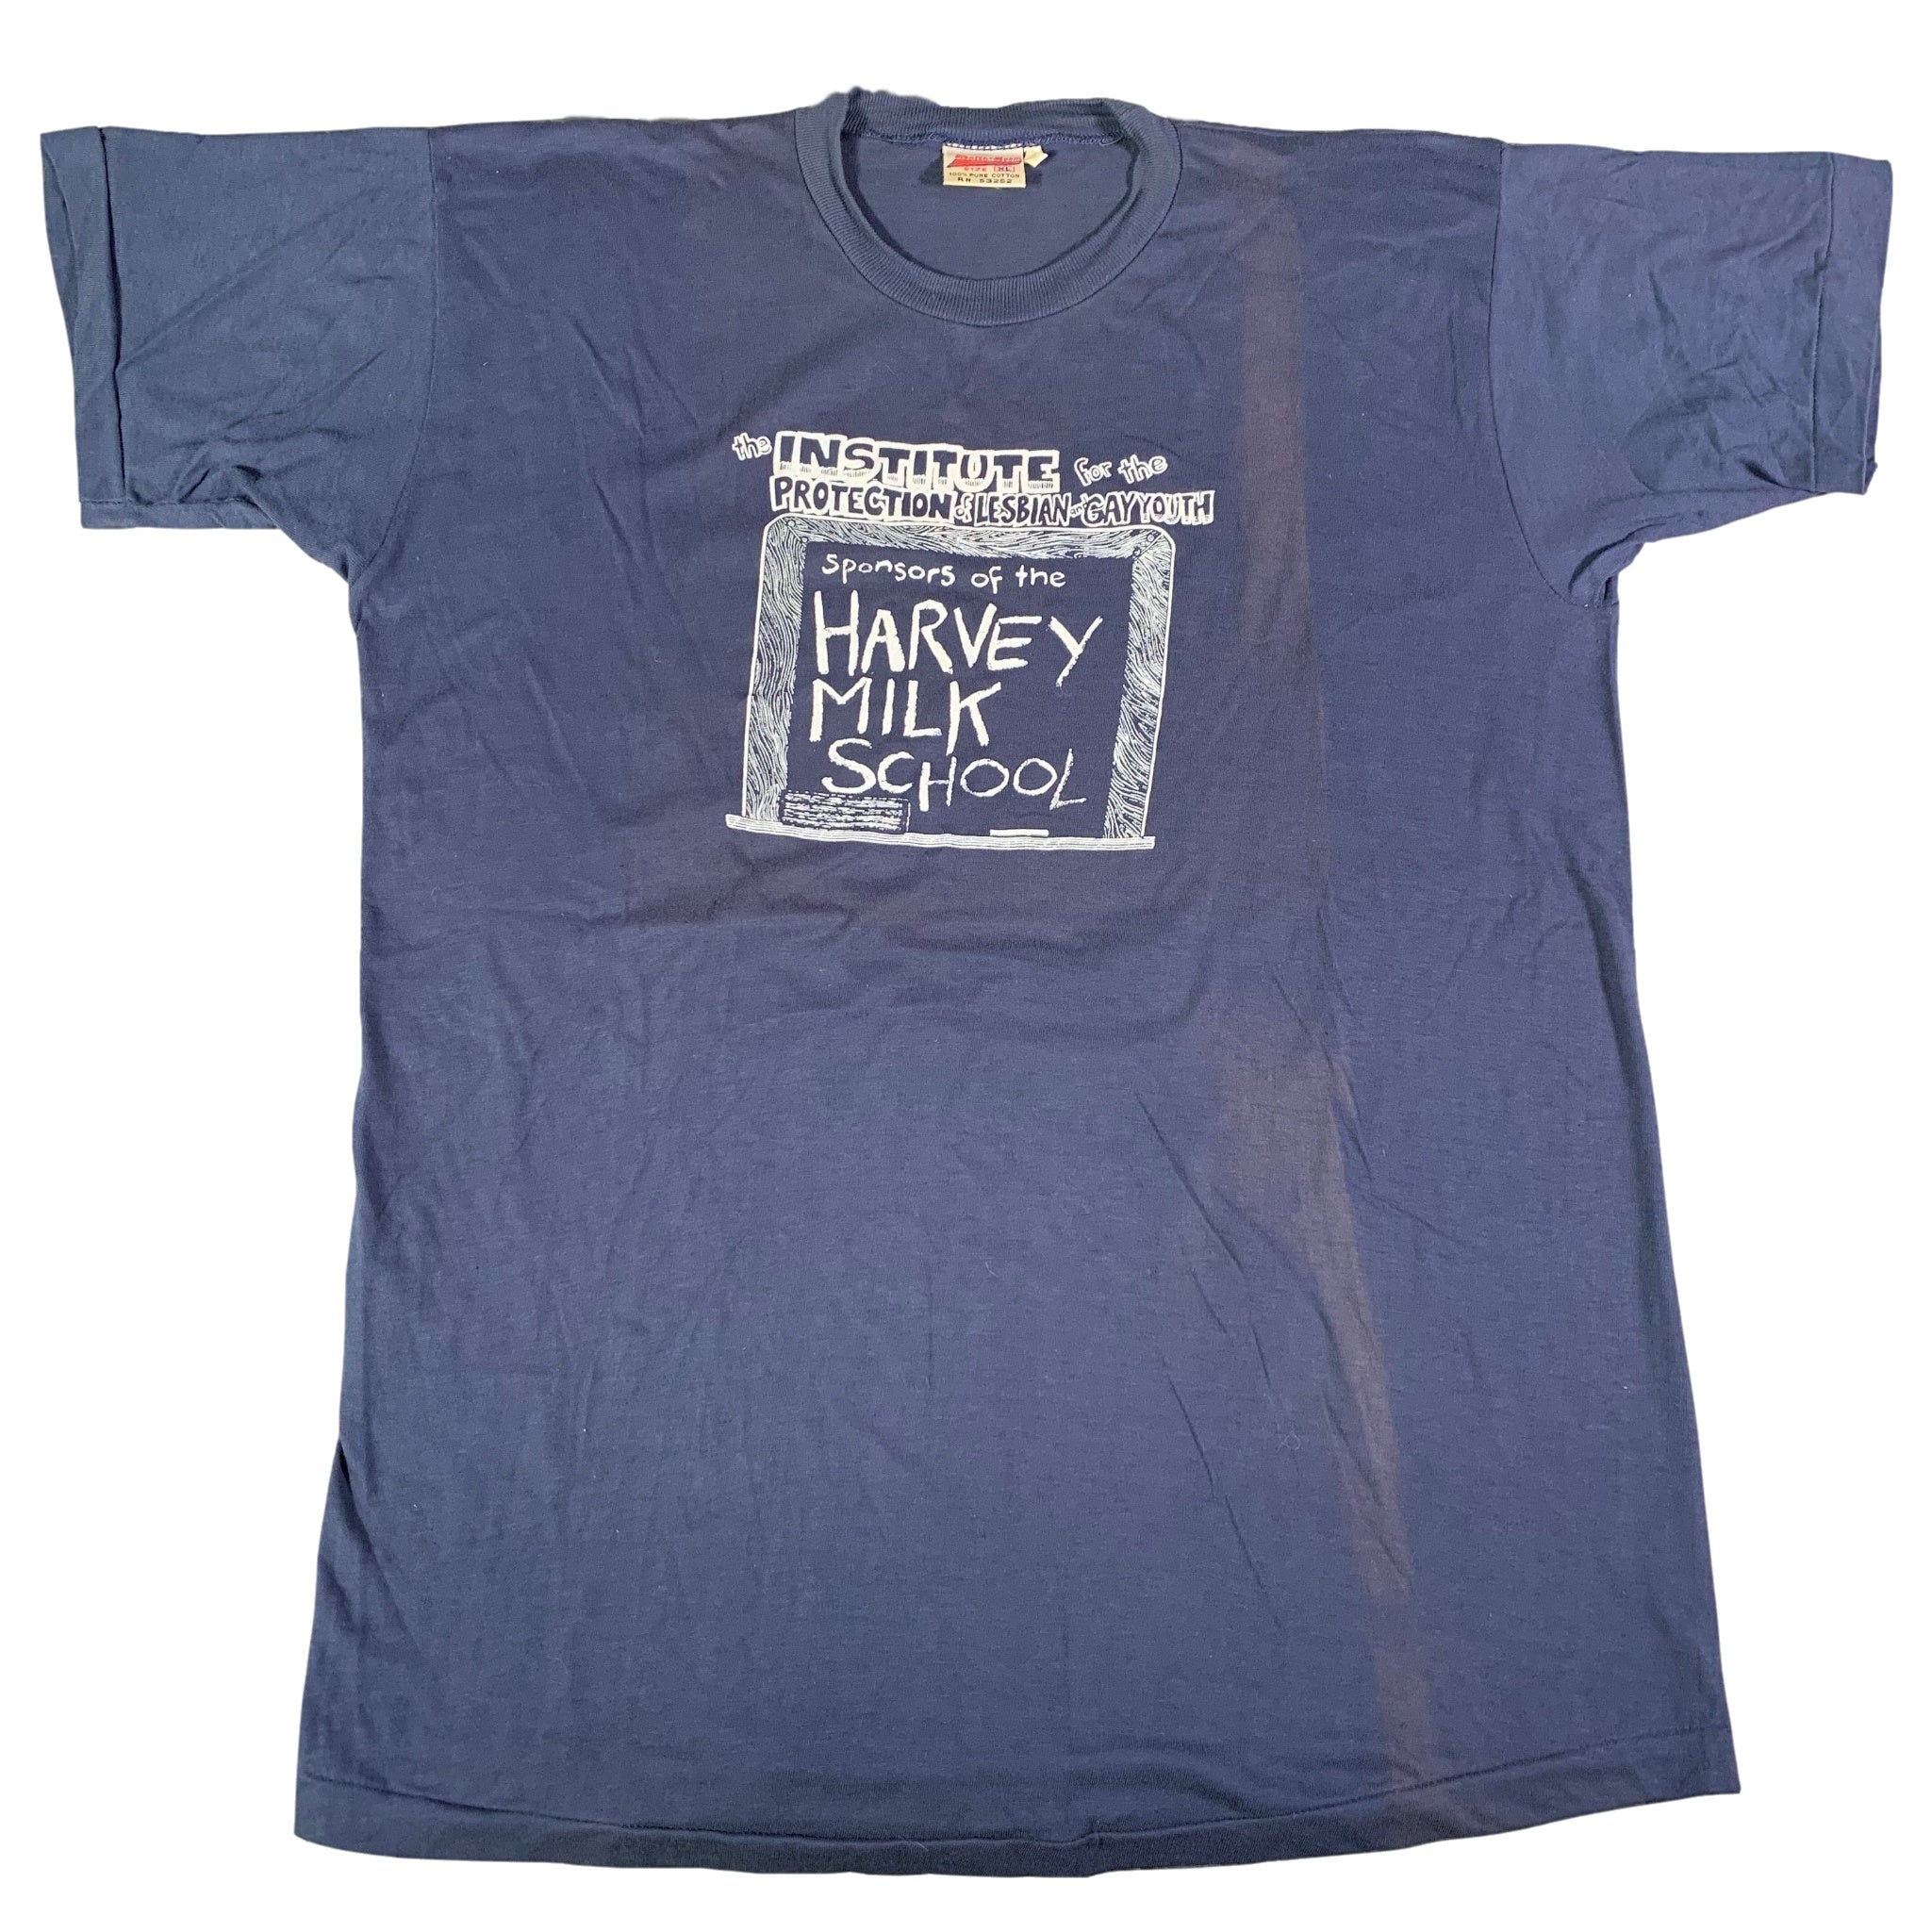 "Vintage Harvey Milk ""Institute Of The Protection Of Lesbian & Gay Youth"" T-Shirt"